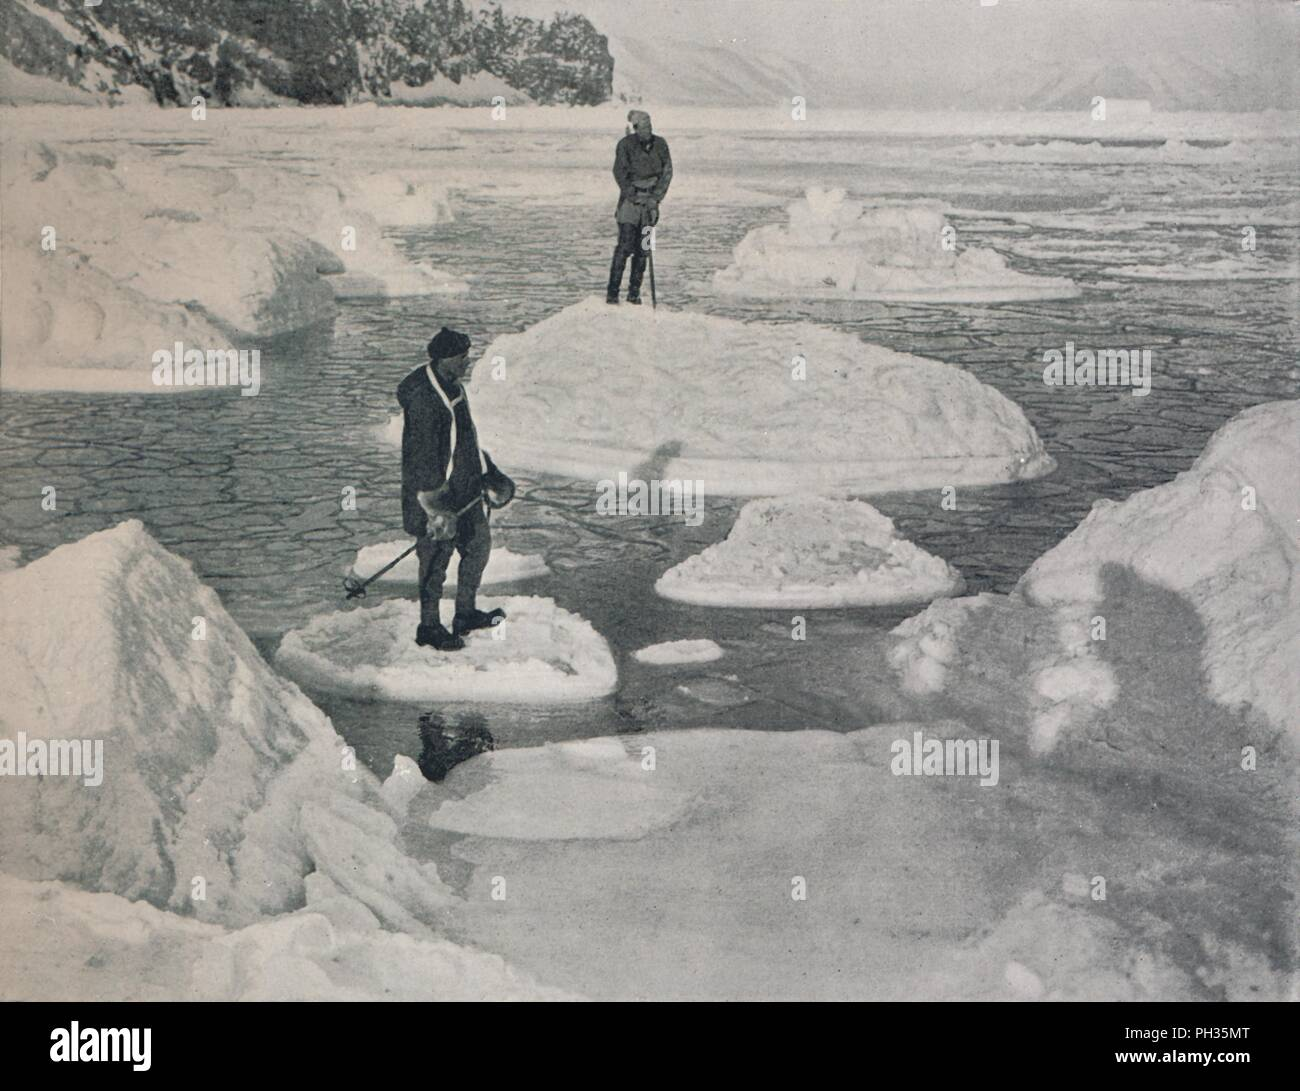 'Campbell and Priestley Afloat on Pancake Ice', 1912, (1913). Expedition members Lieutenant Victor Campbell and geologist Raymond Priestley. The final expedition of British Antarctic explorer Captain Robert Falcon Scott (1868-1912) left London on 1 June 1910 bound for the South Pole. The Terra Nova Expedition, officially the British Antarctic Expedition (1910-1913), included a geologist, a zoologist, a surgeon, a photographer, an engineer, a ski expert, a meteorologist and a physicist among others. Scott wished to continue the scientific work that he had begun when leading the Discovery Expedi - Stock Image